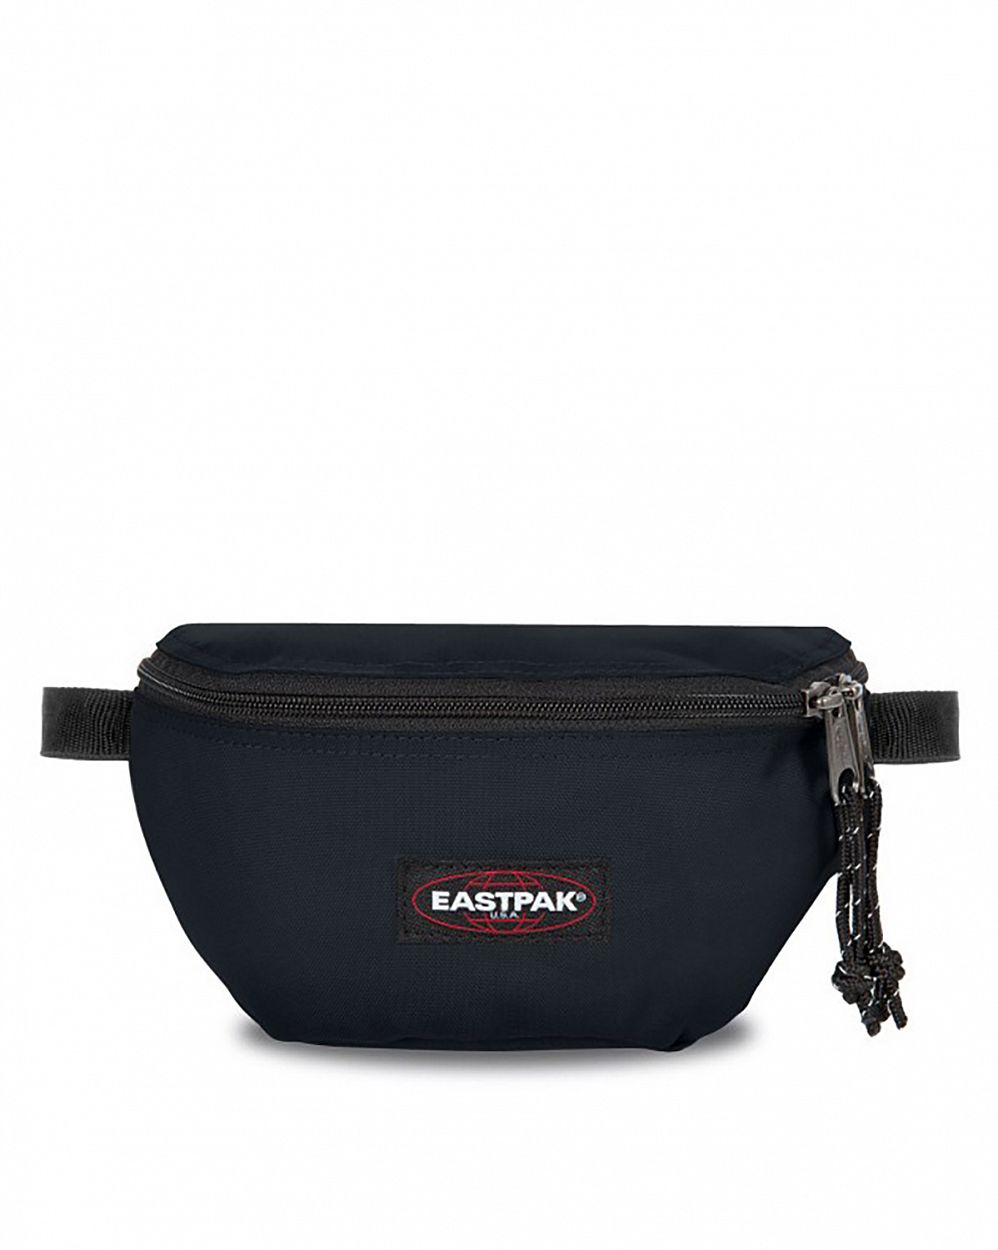 Сумка на пояс Eastpak Springer Cloud Navy отзывы